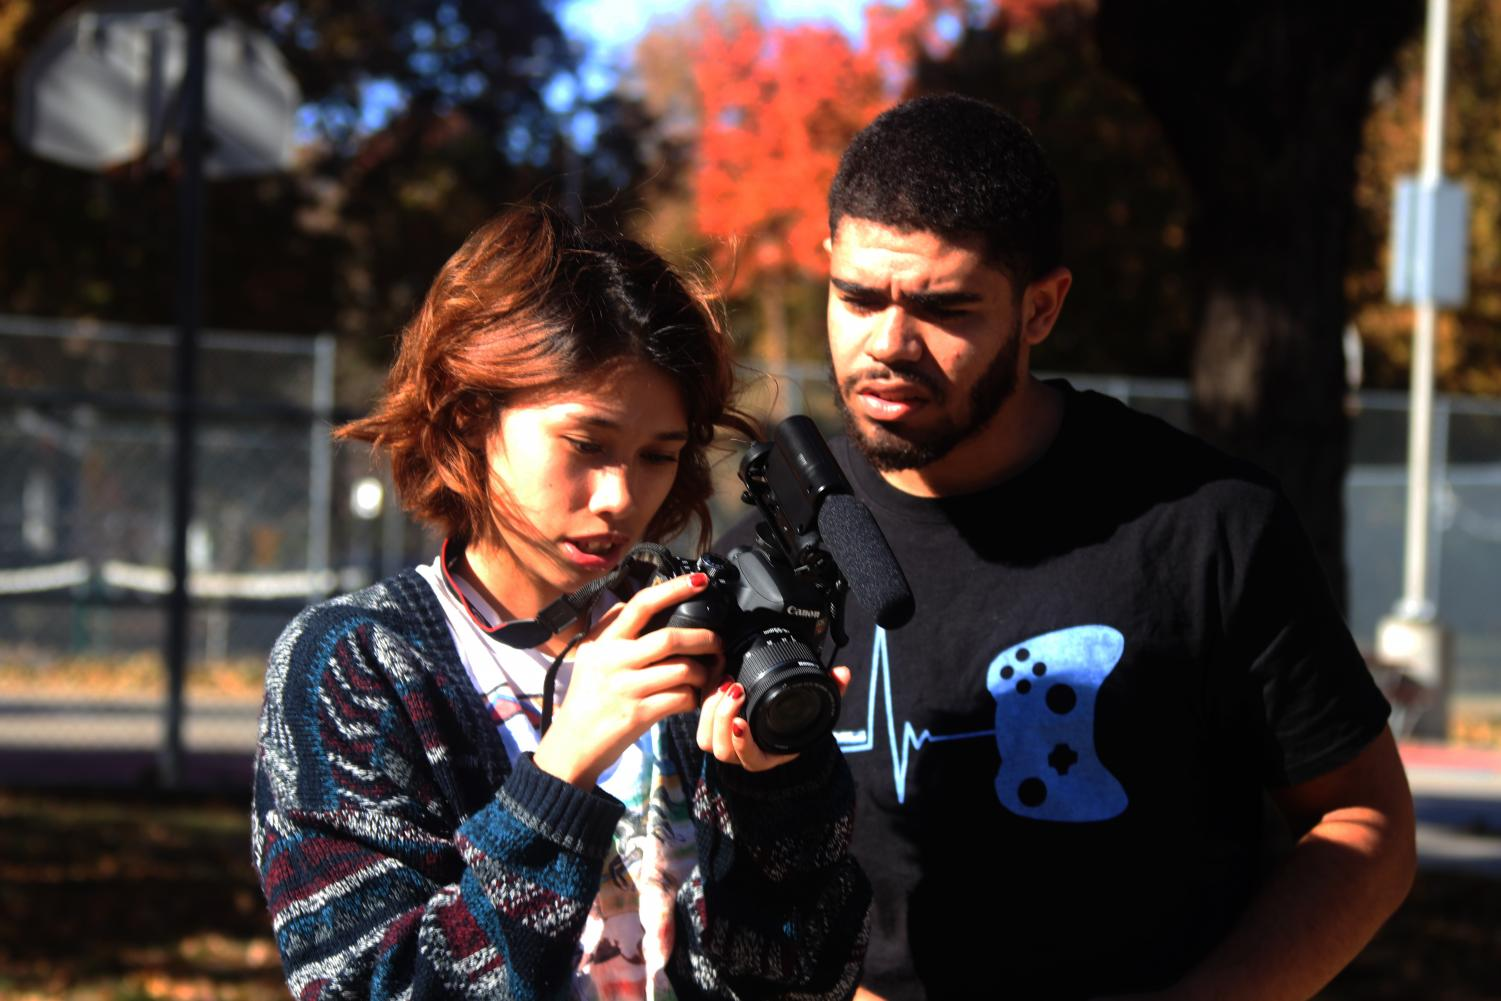 Film students Mia Robinson (left) and Kindred Curry (right) review a shot.